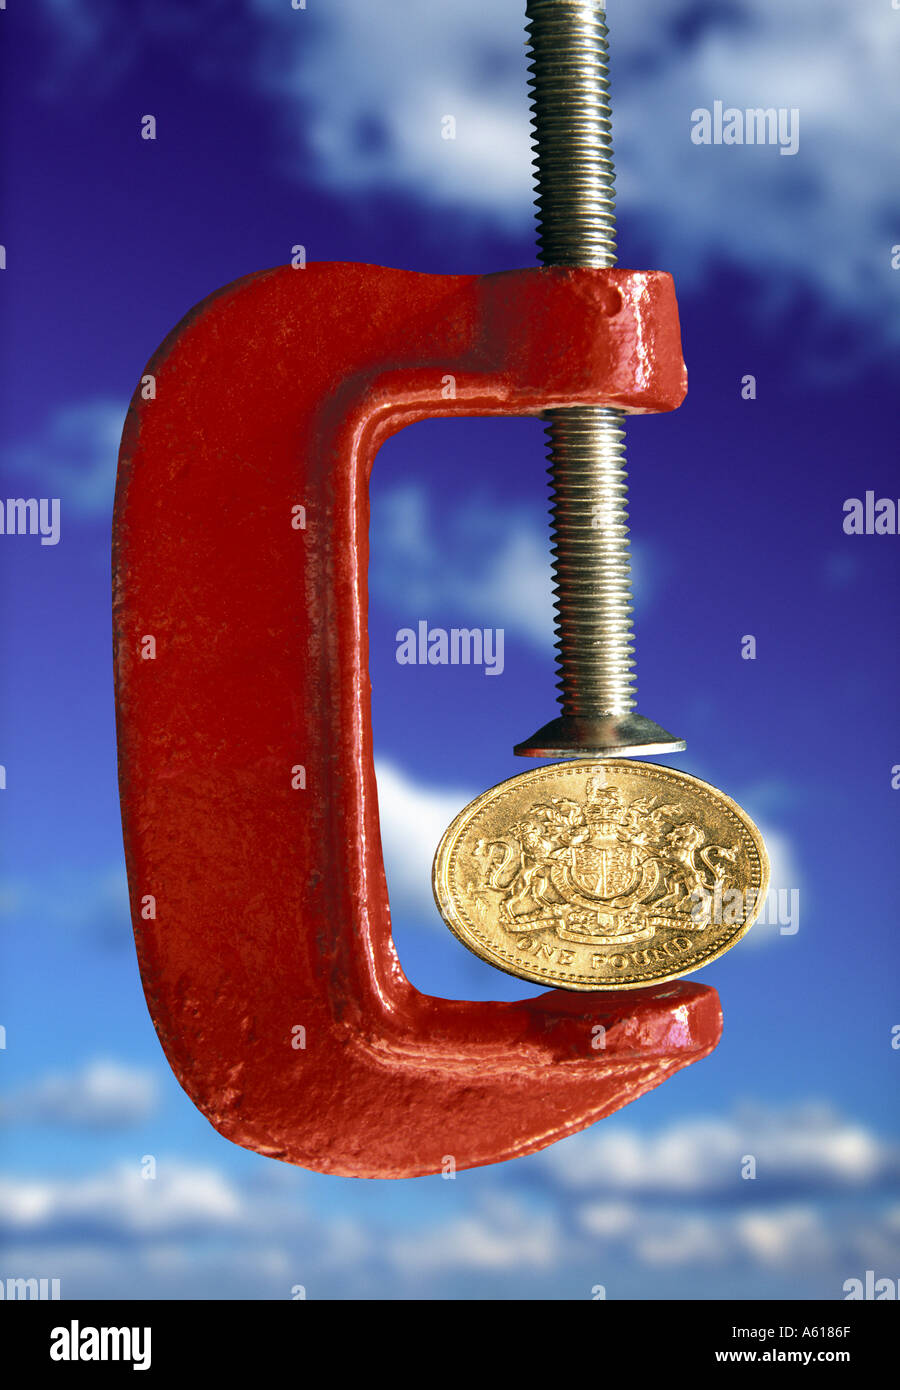 UK Pound squeezed in clamp - Stock Image